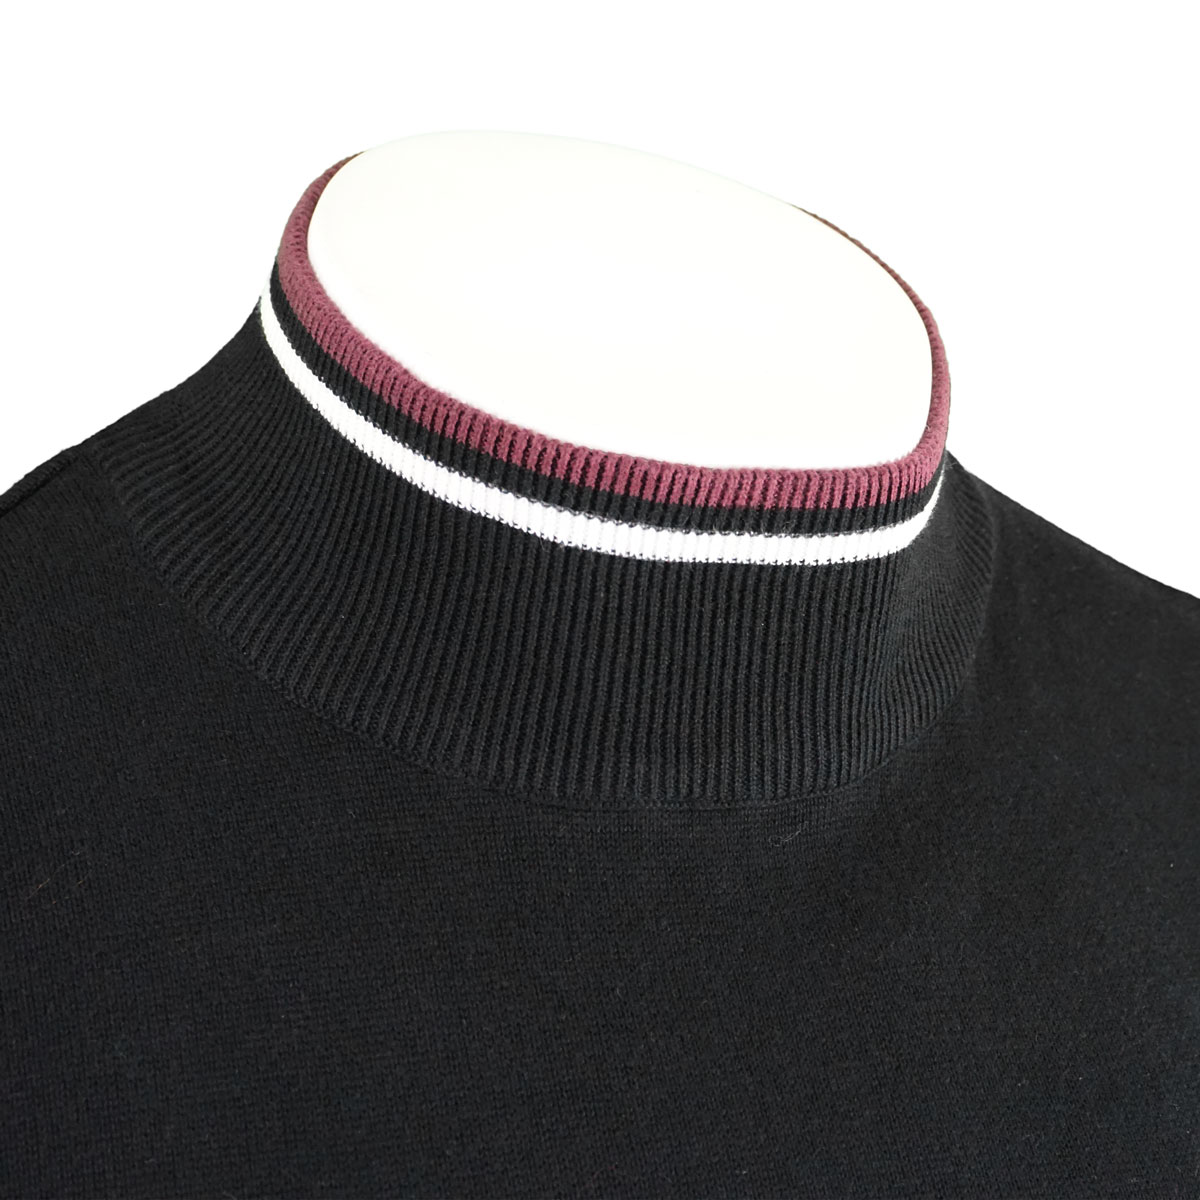 Brave-Soul-Mens-Turtle-Neck-Jumper-Contrast-Tipped-Hallis thumbnail 22